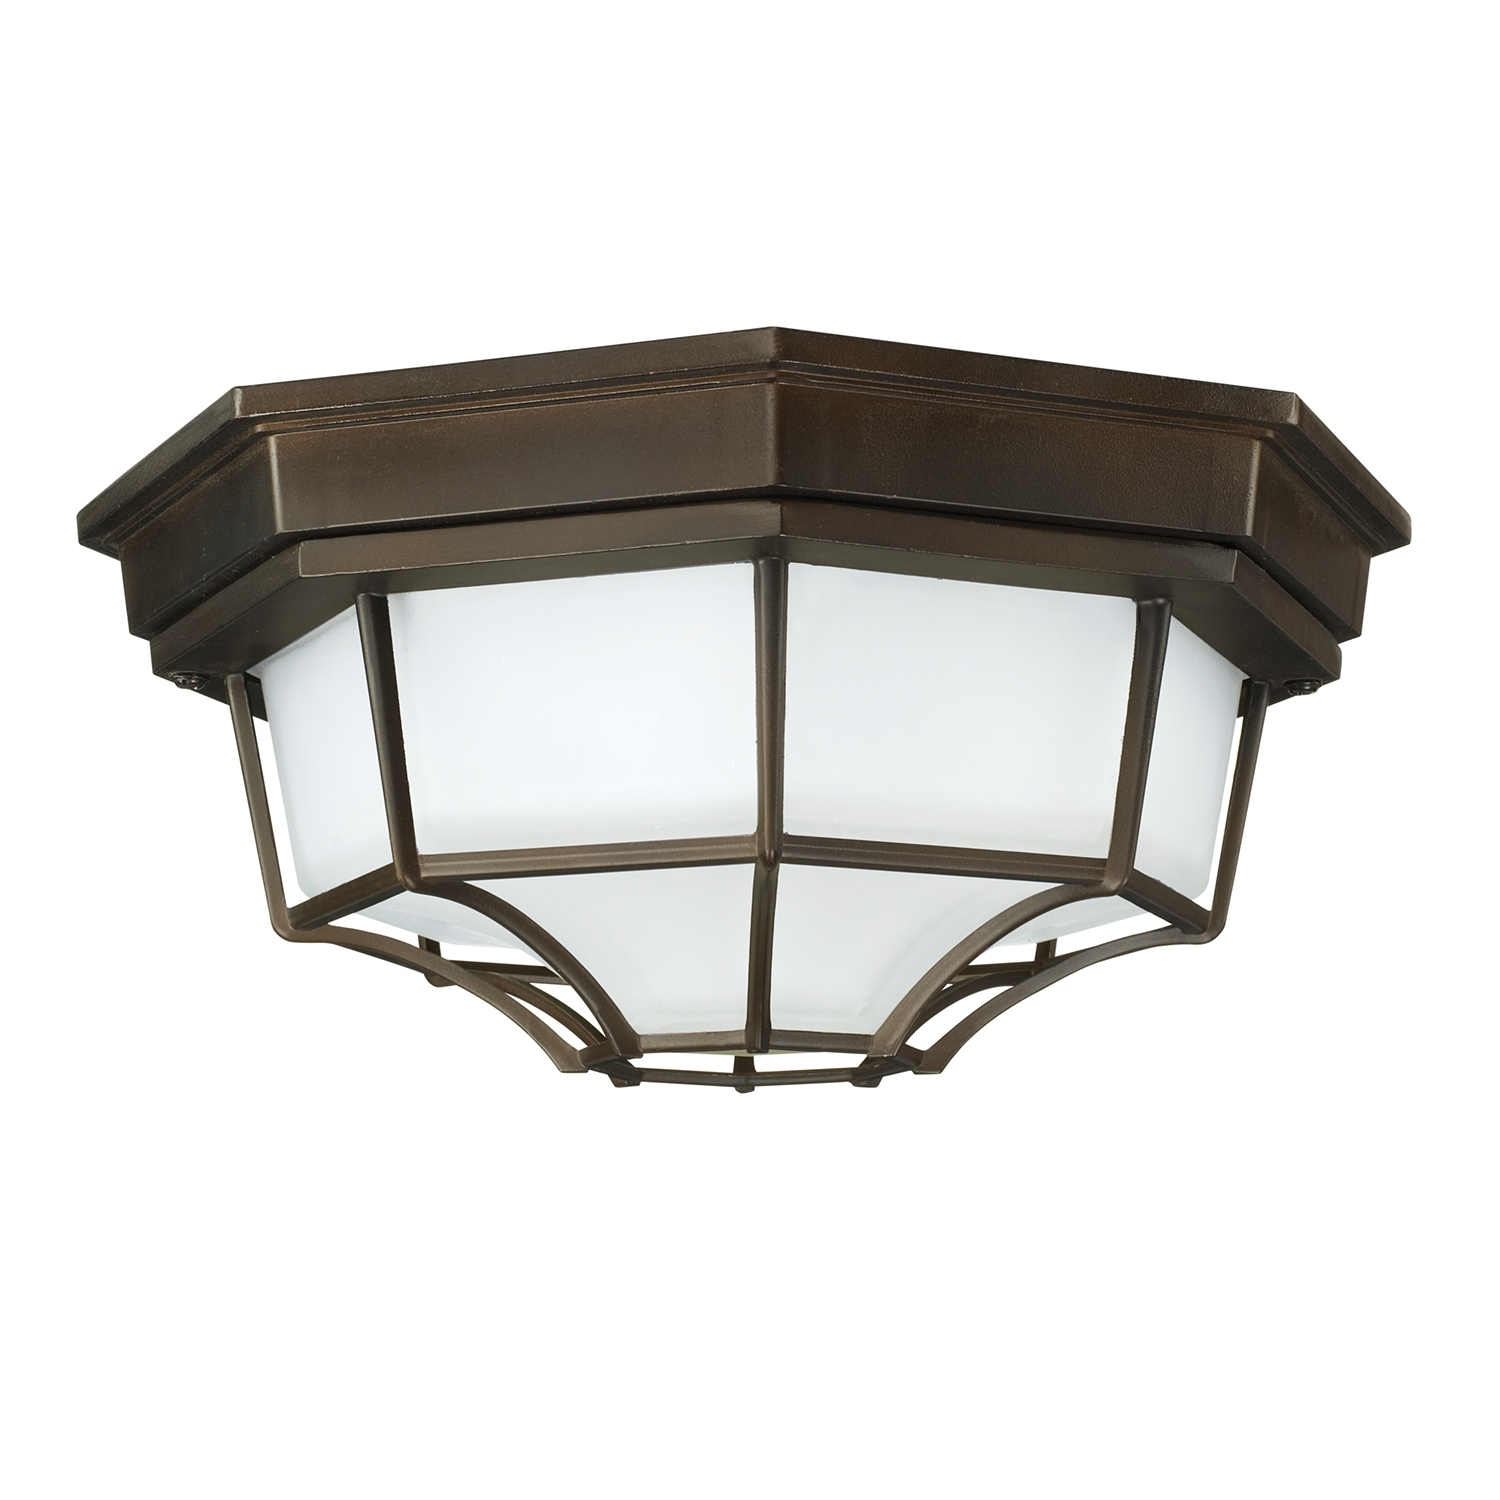 Trendy Outdoor Ceiling Lights For Porch For Outdoor Ceiling Lighting (View 14 of 20)